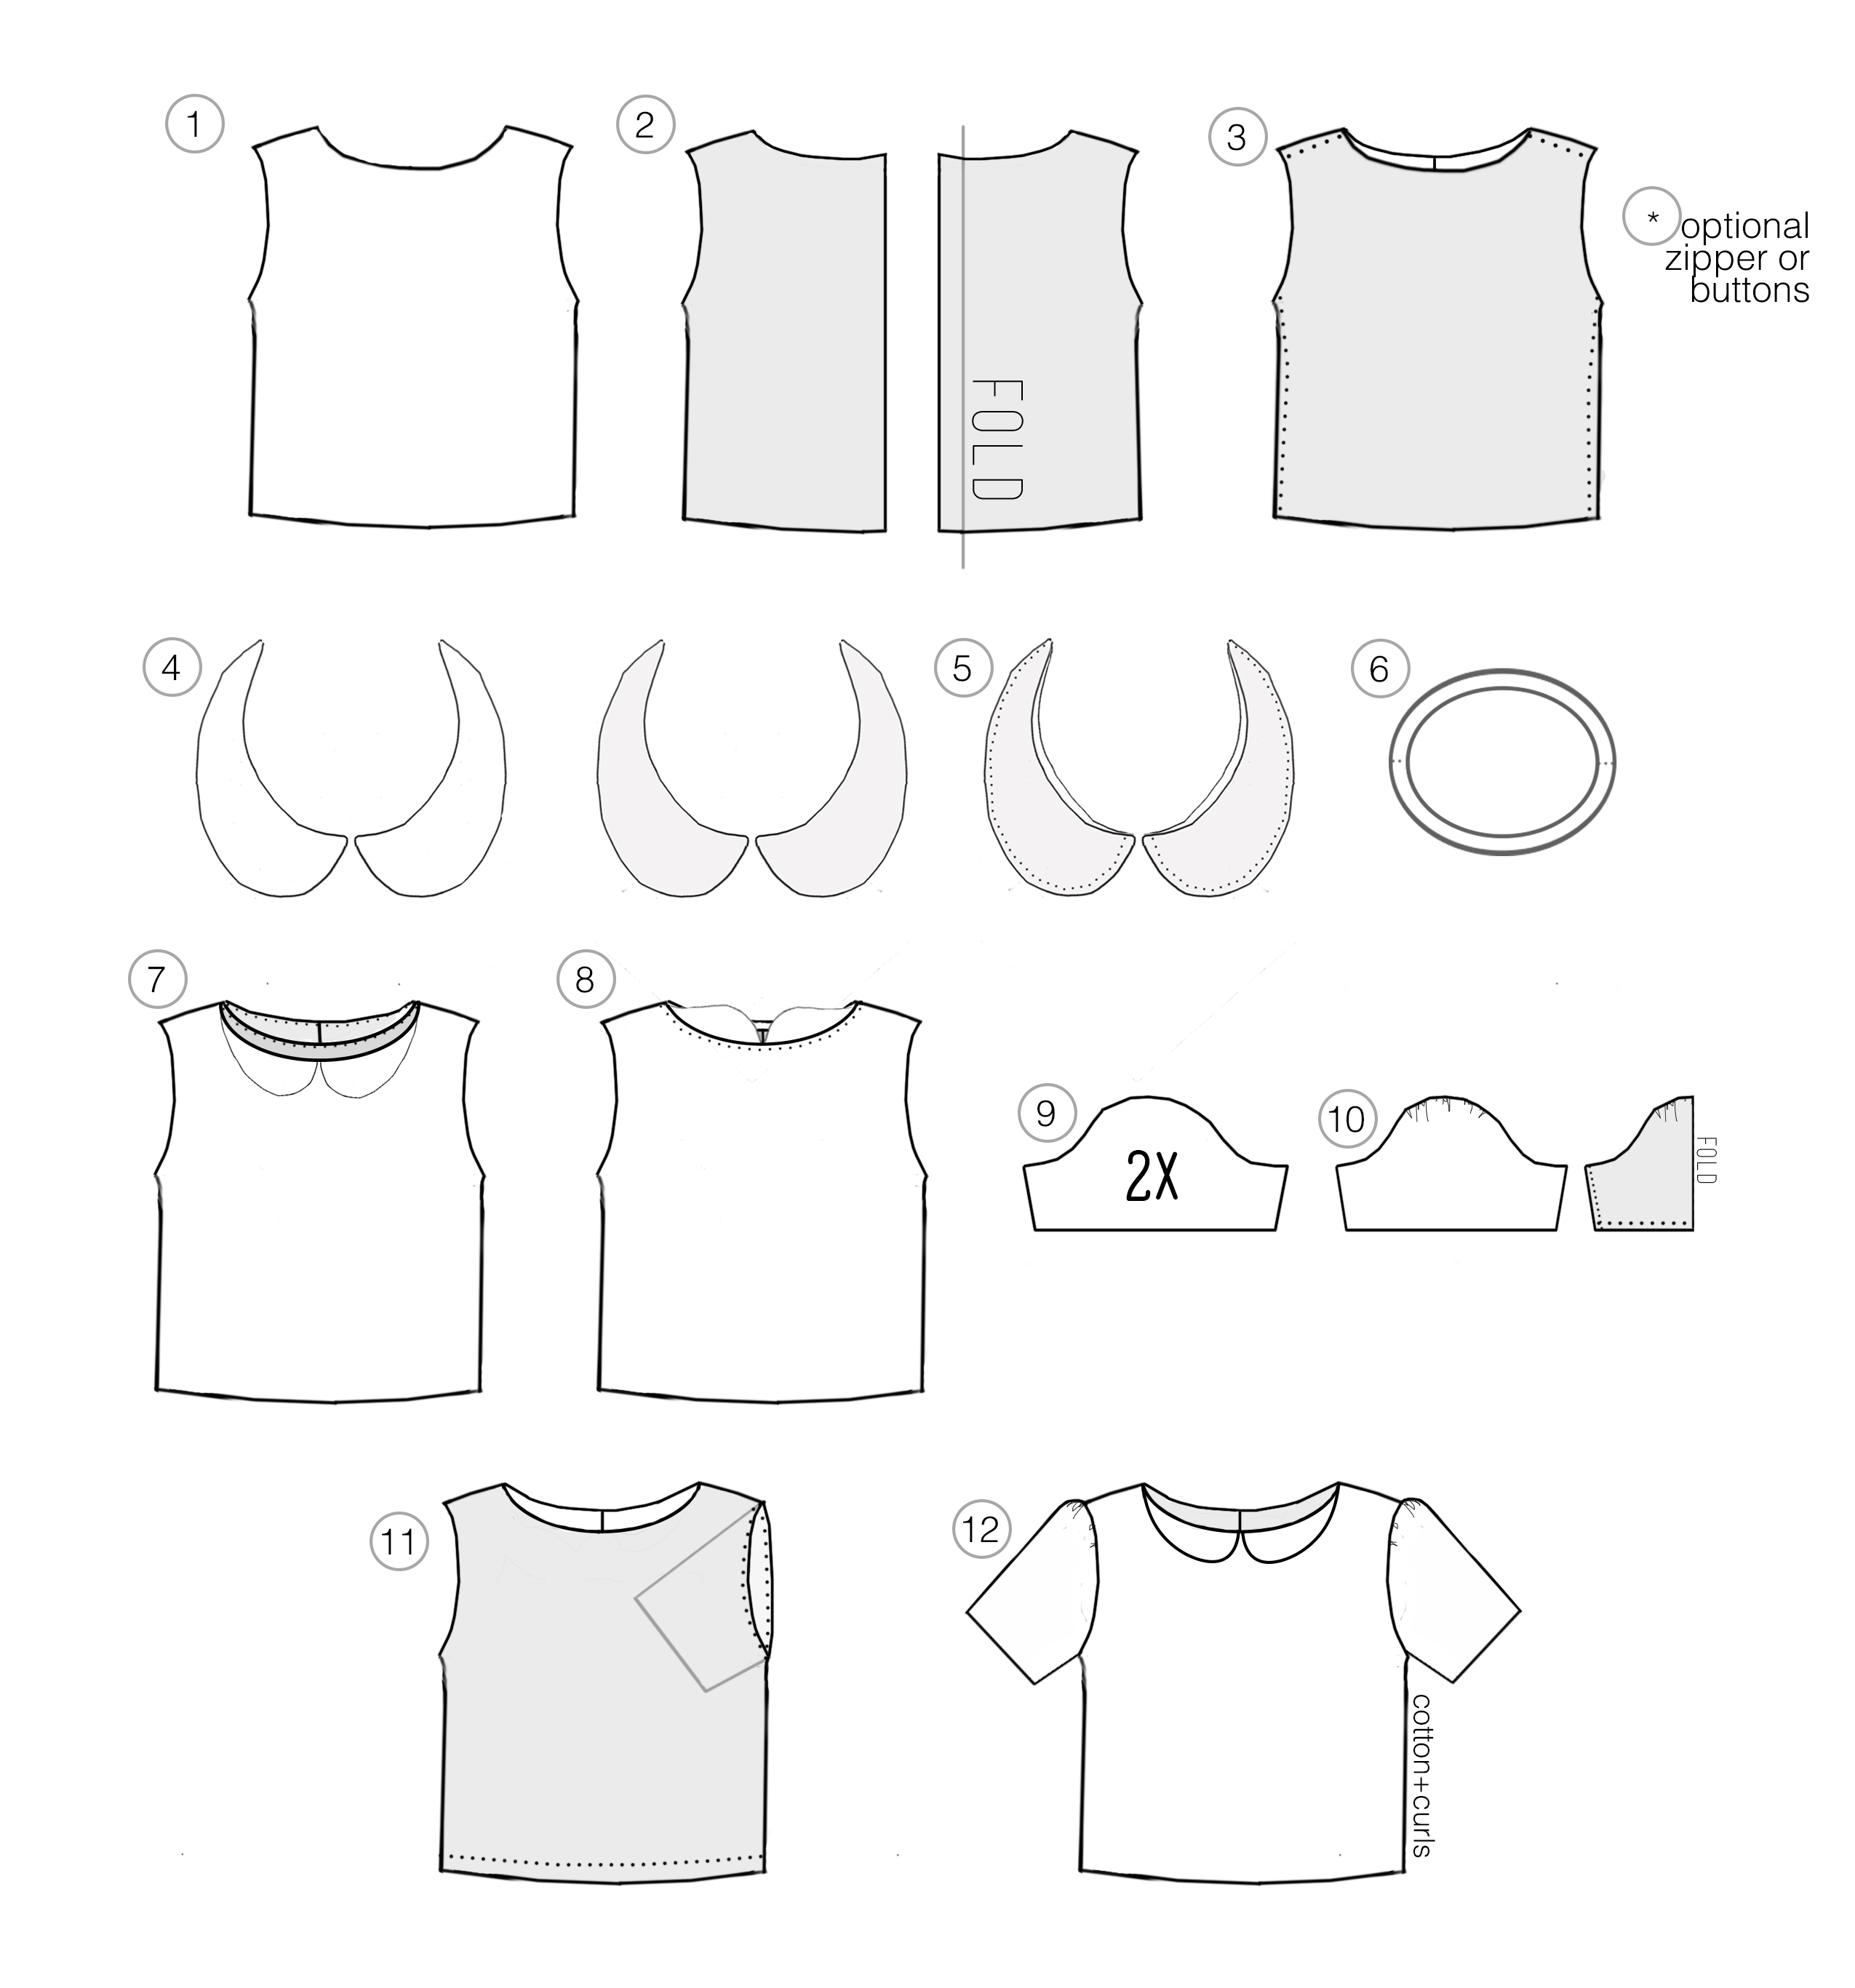 diy peter pan collar top with optional zipper or button back. Black Bedroom Furniture Sets. Home Design Ideas